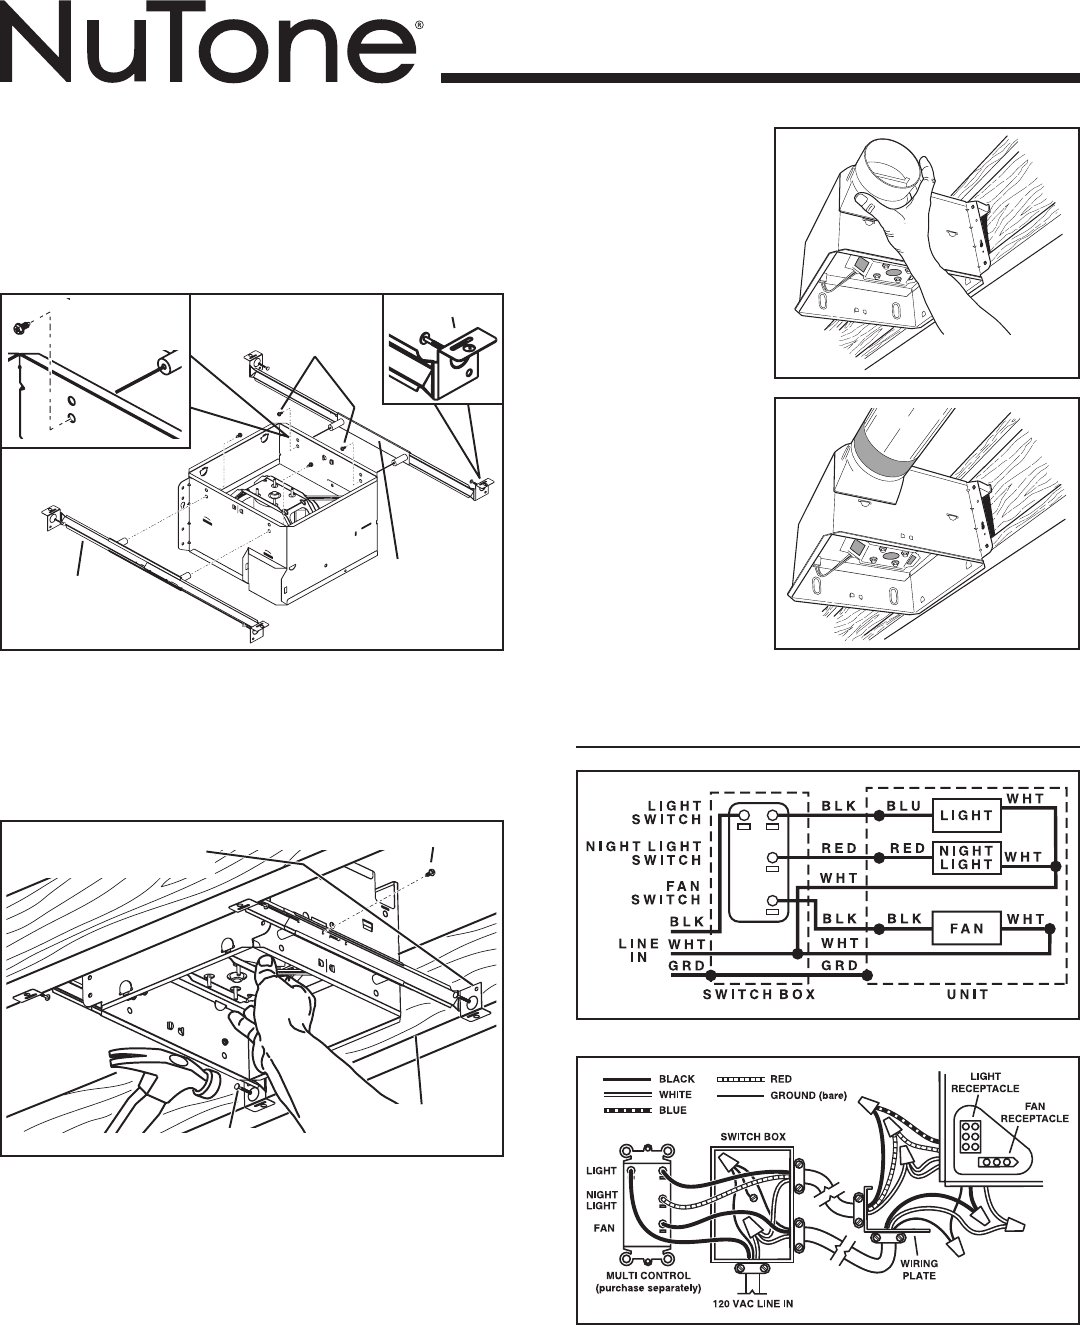 Ceiling Fan And Light Wiring Diagram Manual Guide